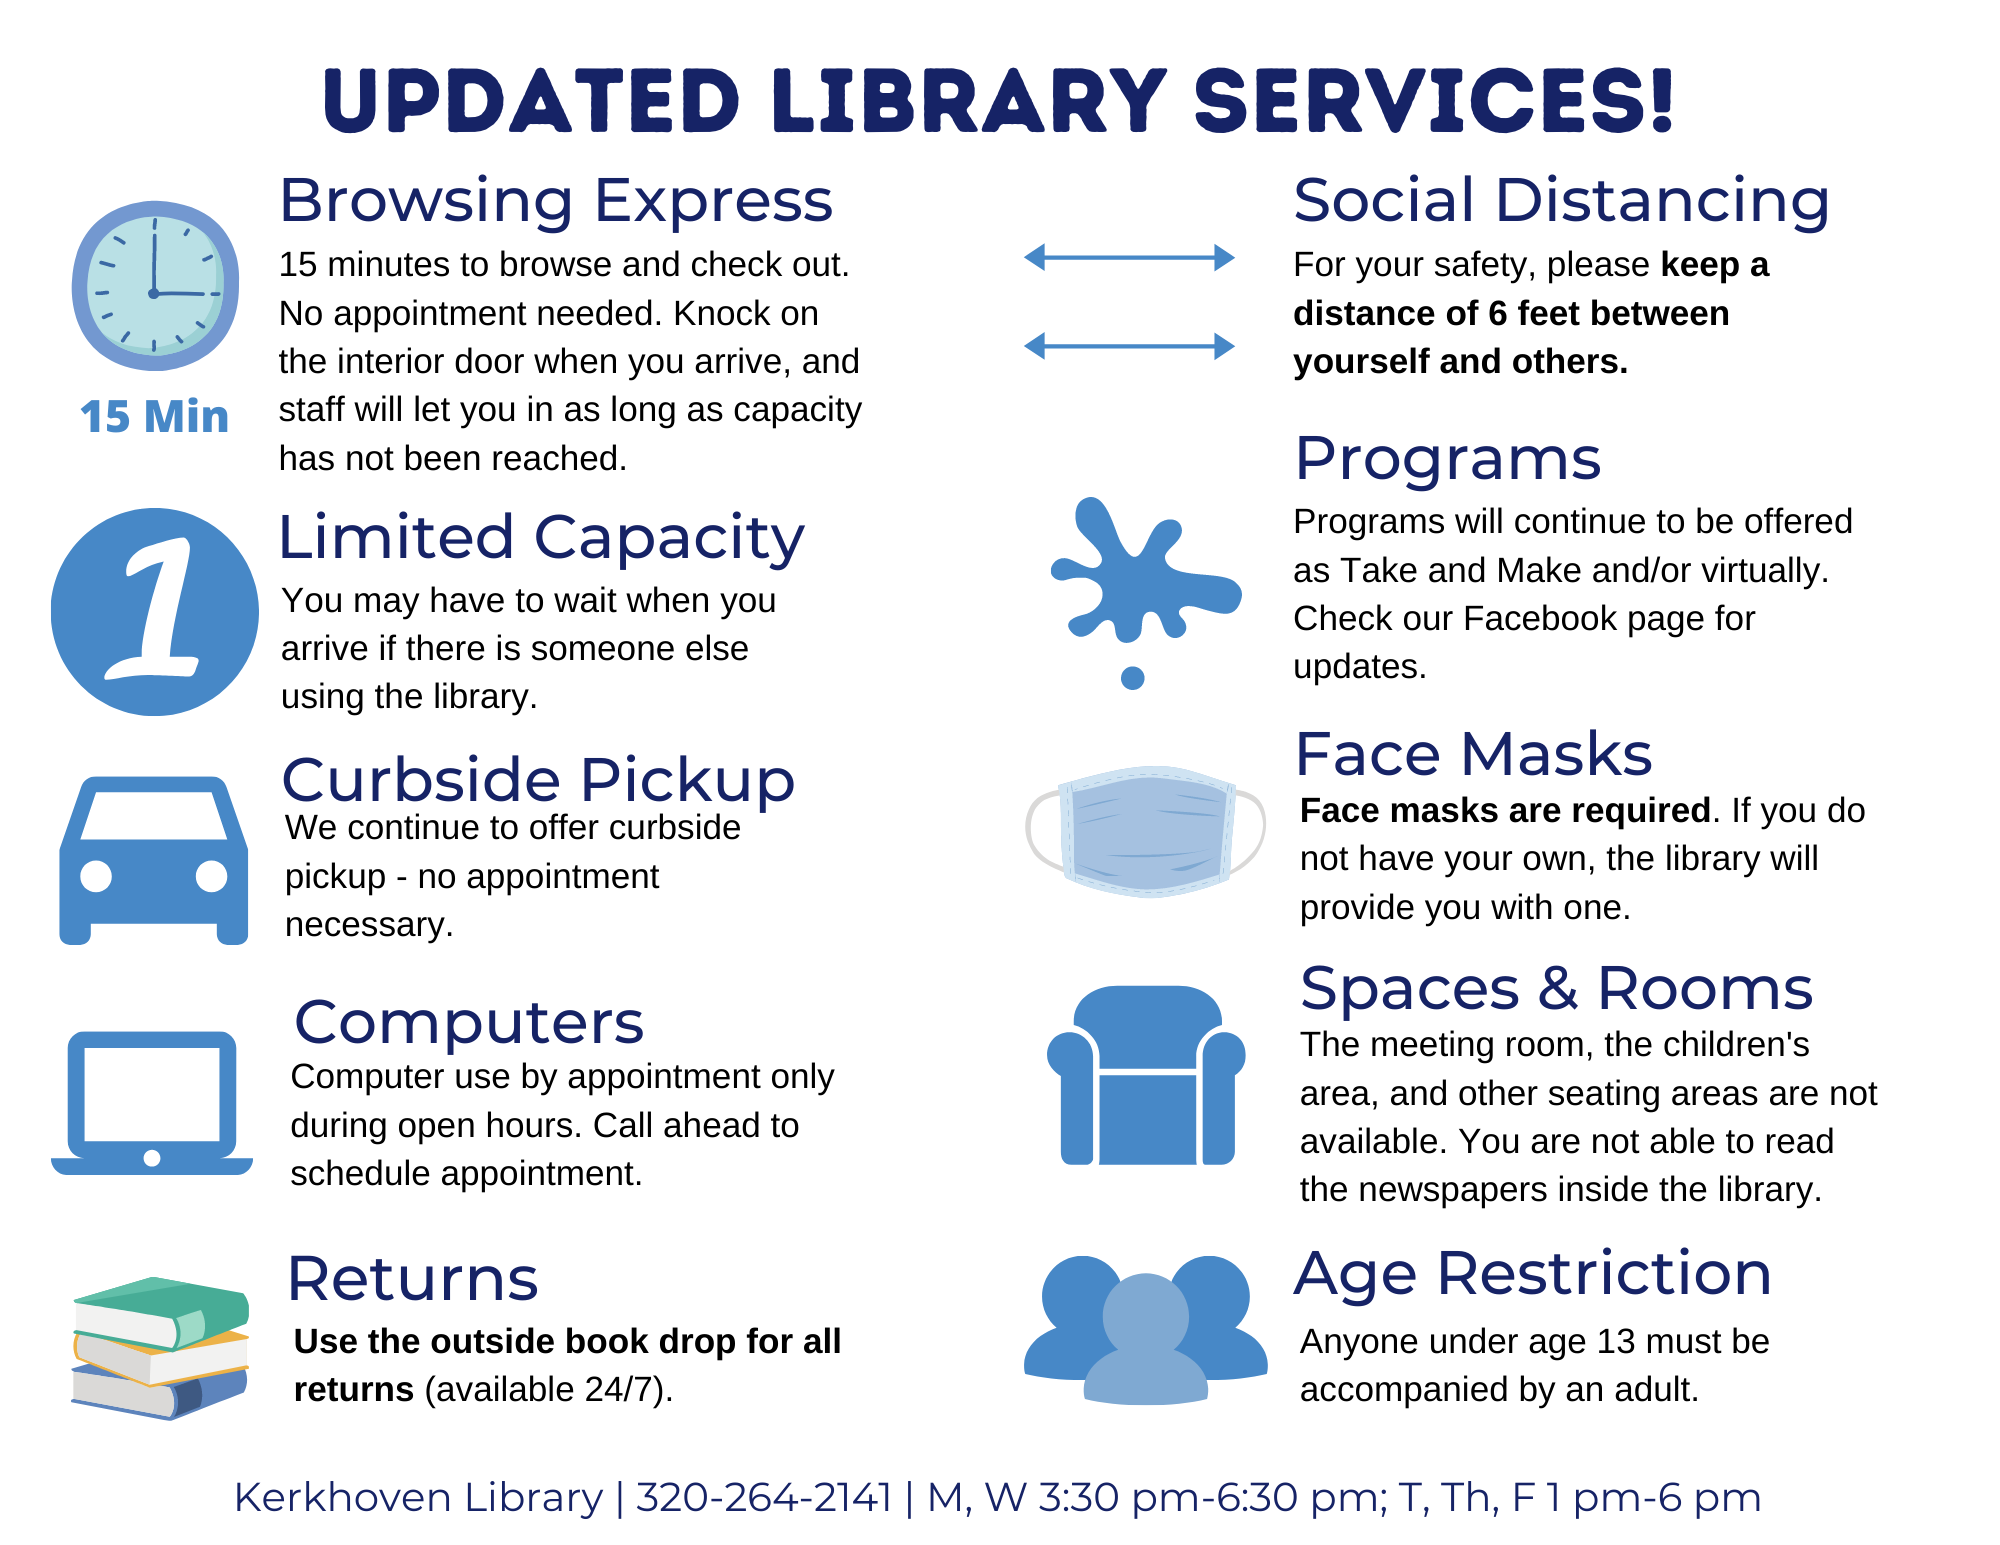 We are now doing Library Express. You'll have 15 mins to browse and check out. Our max capacity is 1 person, so you may be asked to wait until another user is done. A mask or face covering is required to enter our building. All returns must be placed in the return slot. We will continue to offer curbside pick-up services as well.